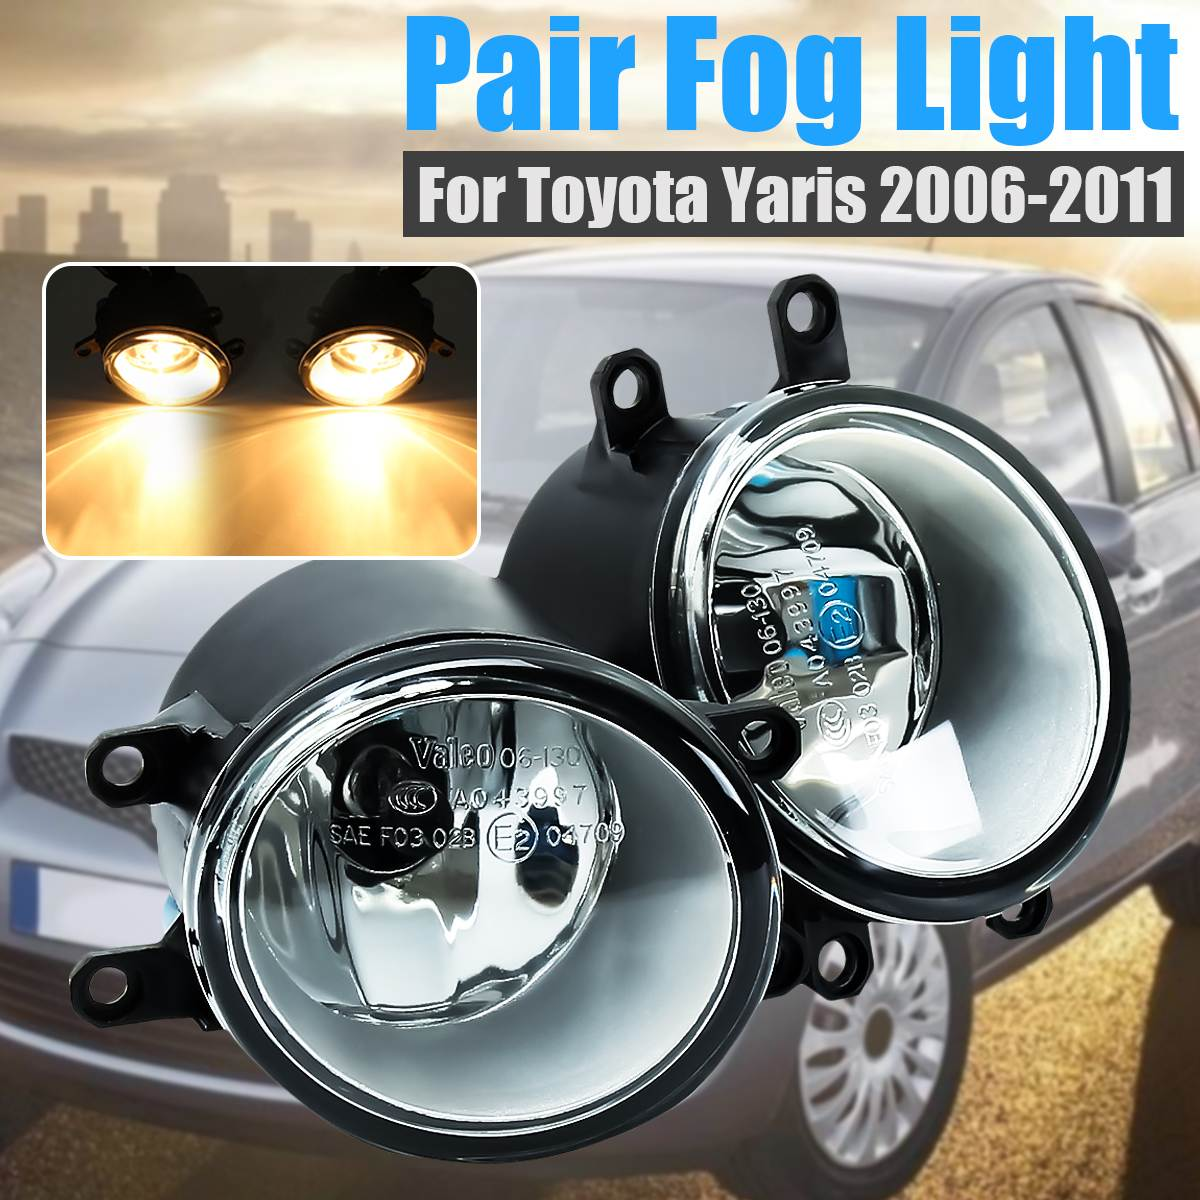 2Pcs Left+Right Car Front Clear Fog Light W/ Switch Harness Cover For Toyota Yaris Sedan 4-Door 2006 2007 2008 2009 2010 2011 1set front chrome housing clear lens driving bumper fog light lamp grille cover switch line kit for 2007 2009 toyota camry